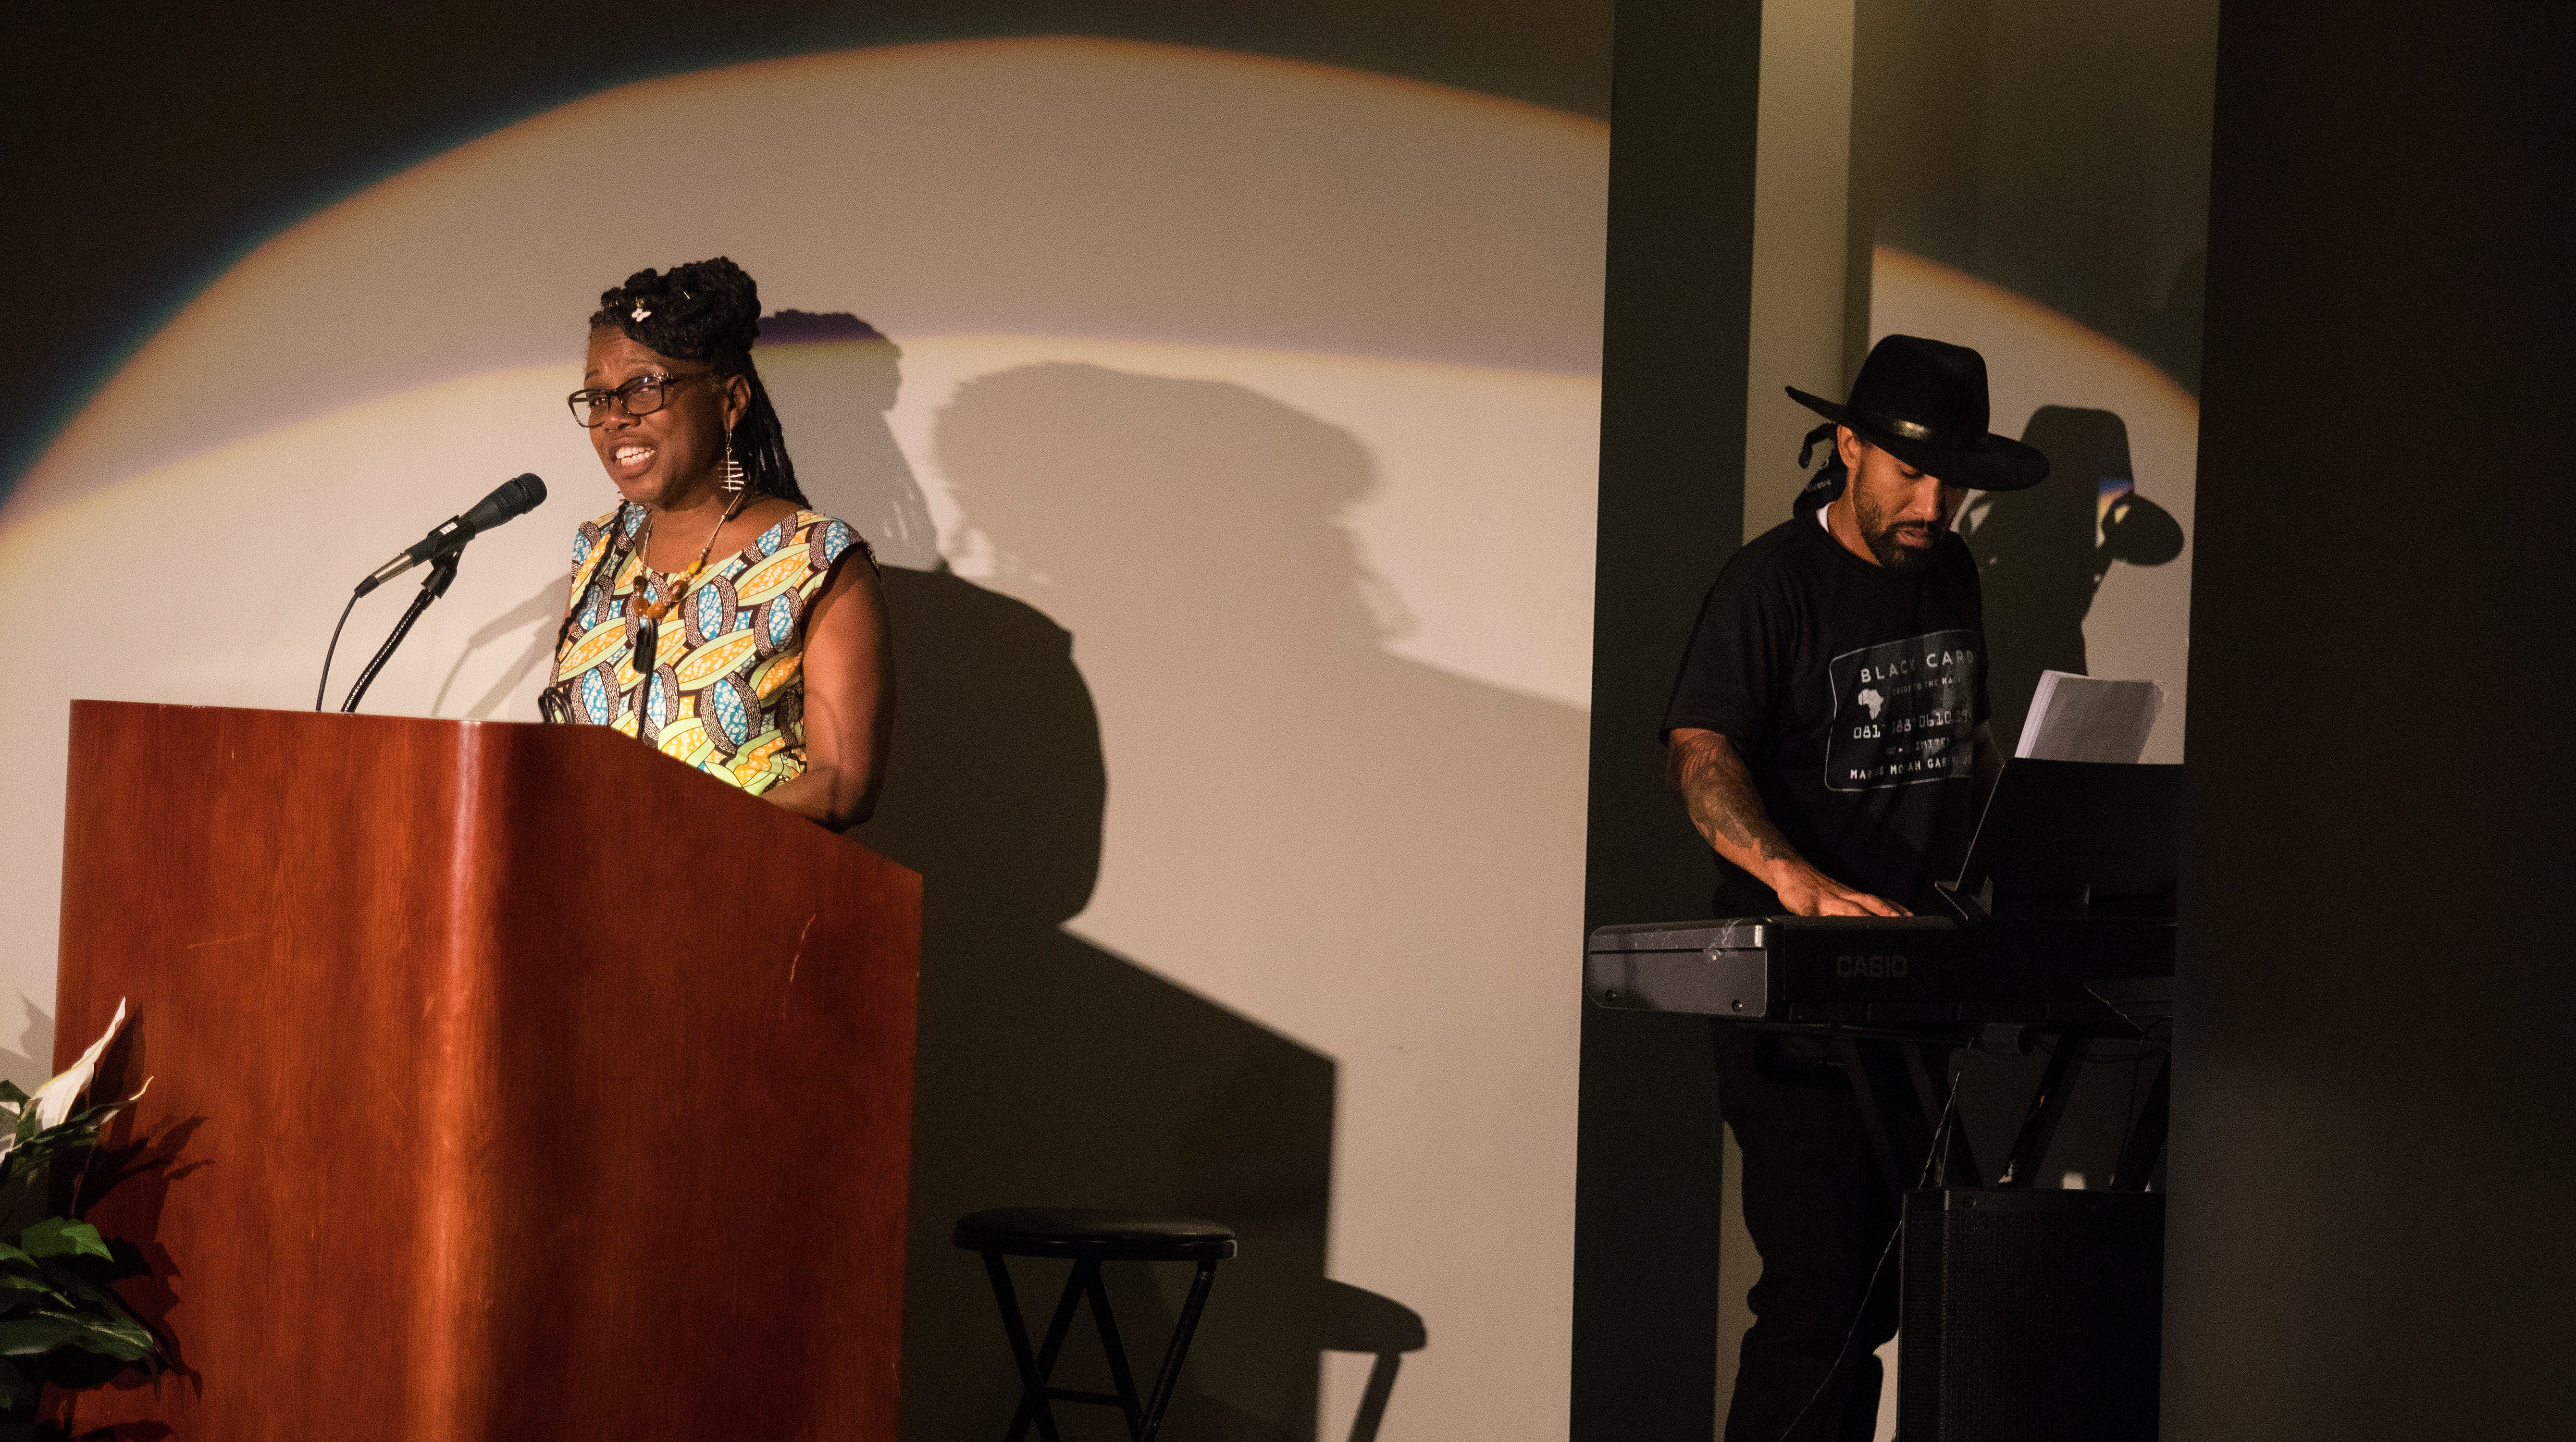 Local artist TAHIRA, left, and local singer/songwriter Jae Street Jr. perform during their multimedia performance of Unbroken Spirit Sunday at the Delaware Art Museum. The performance focuses on the occupation of Wilmington by the U.S. National Guard in 1968.